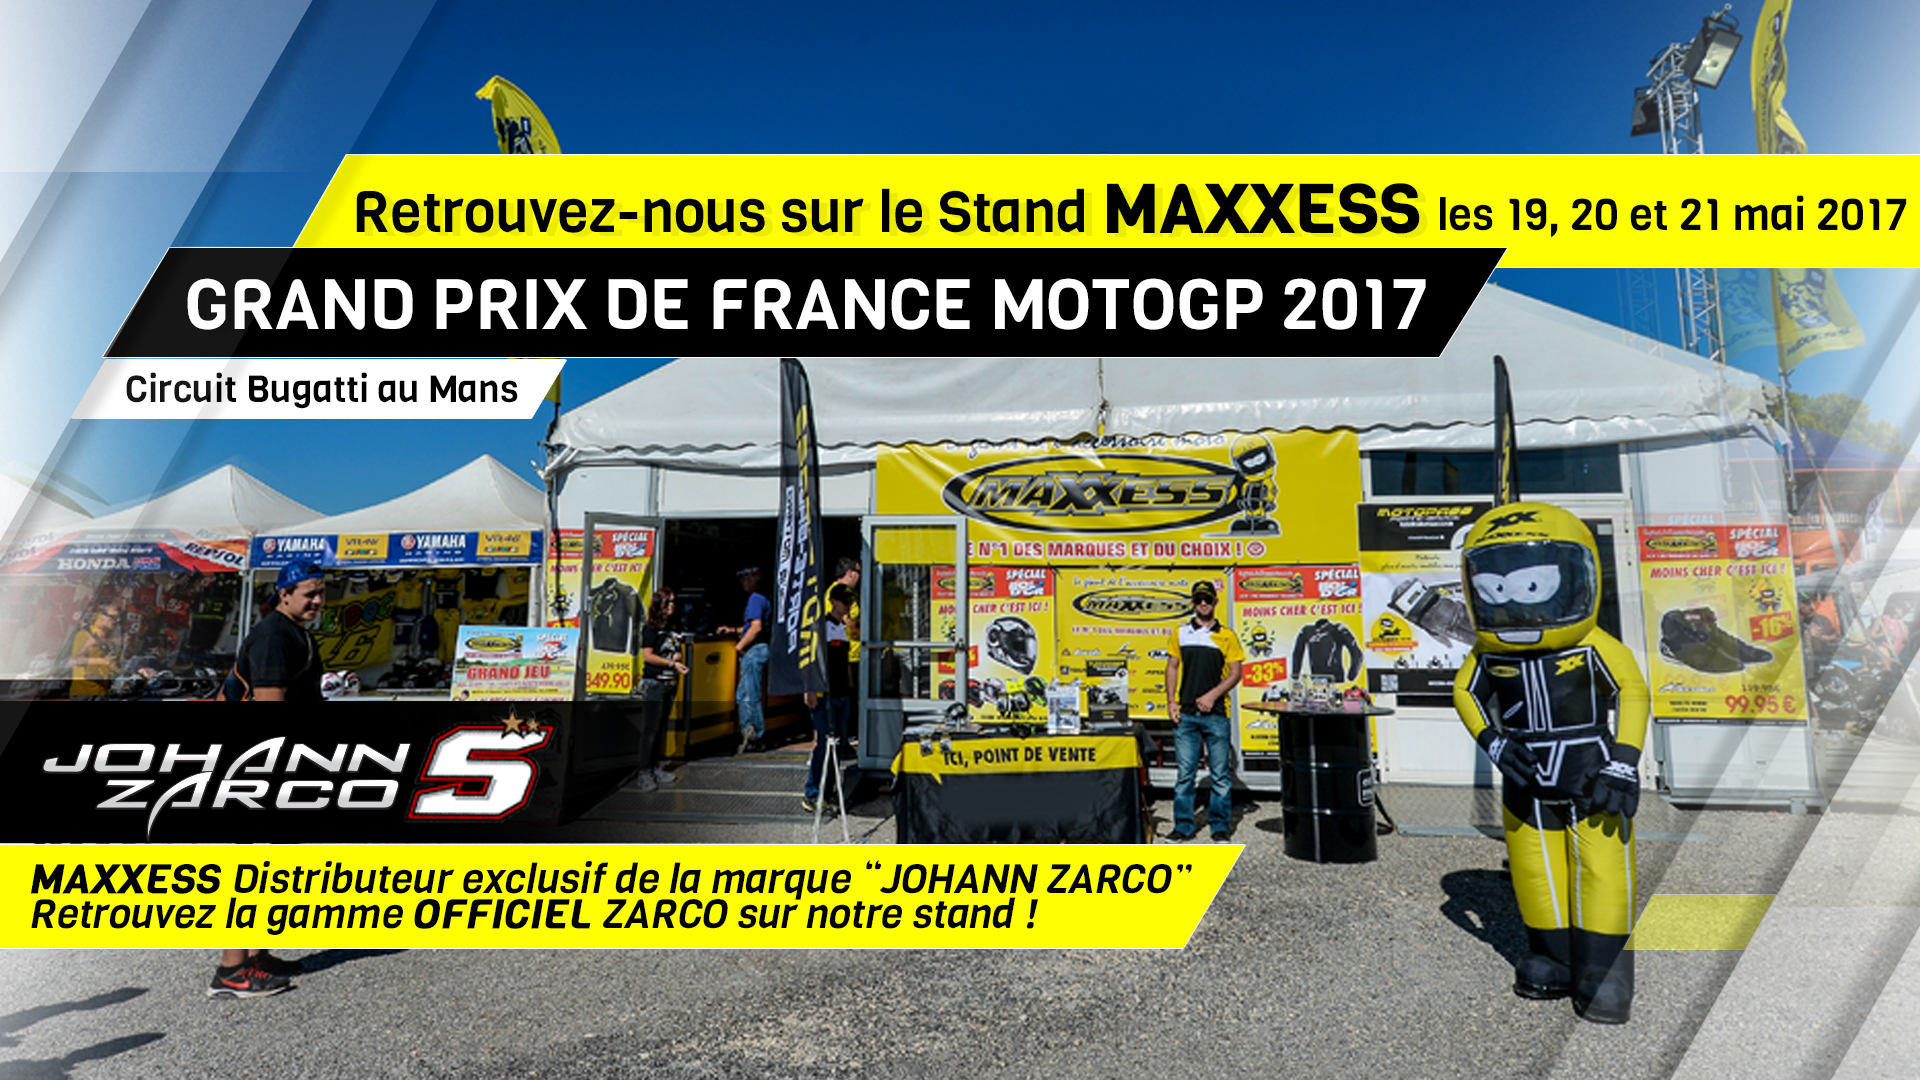 MAXXESS Au GRAND PRIX De France MotoGP 2017